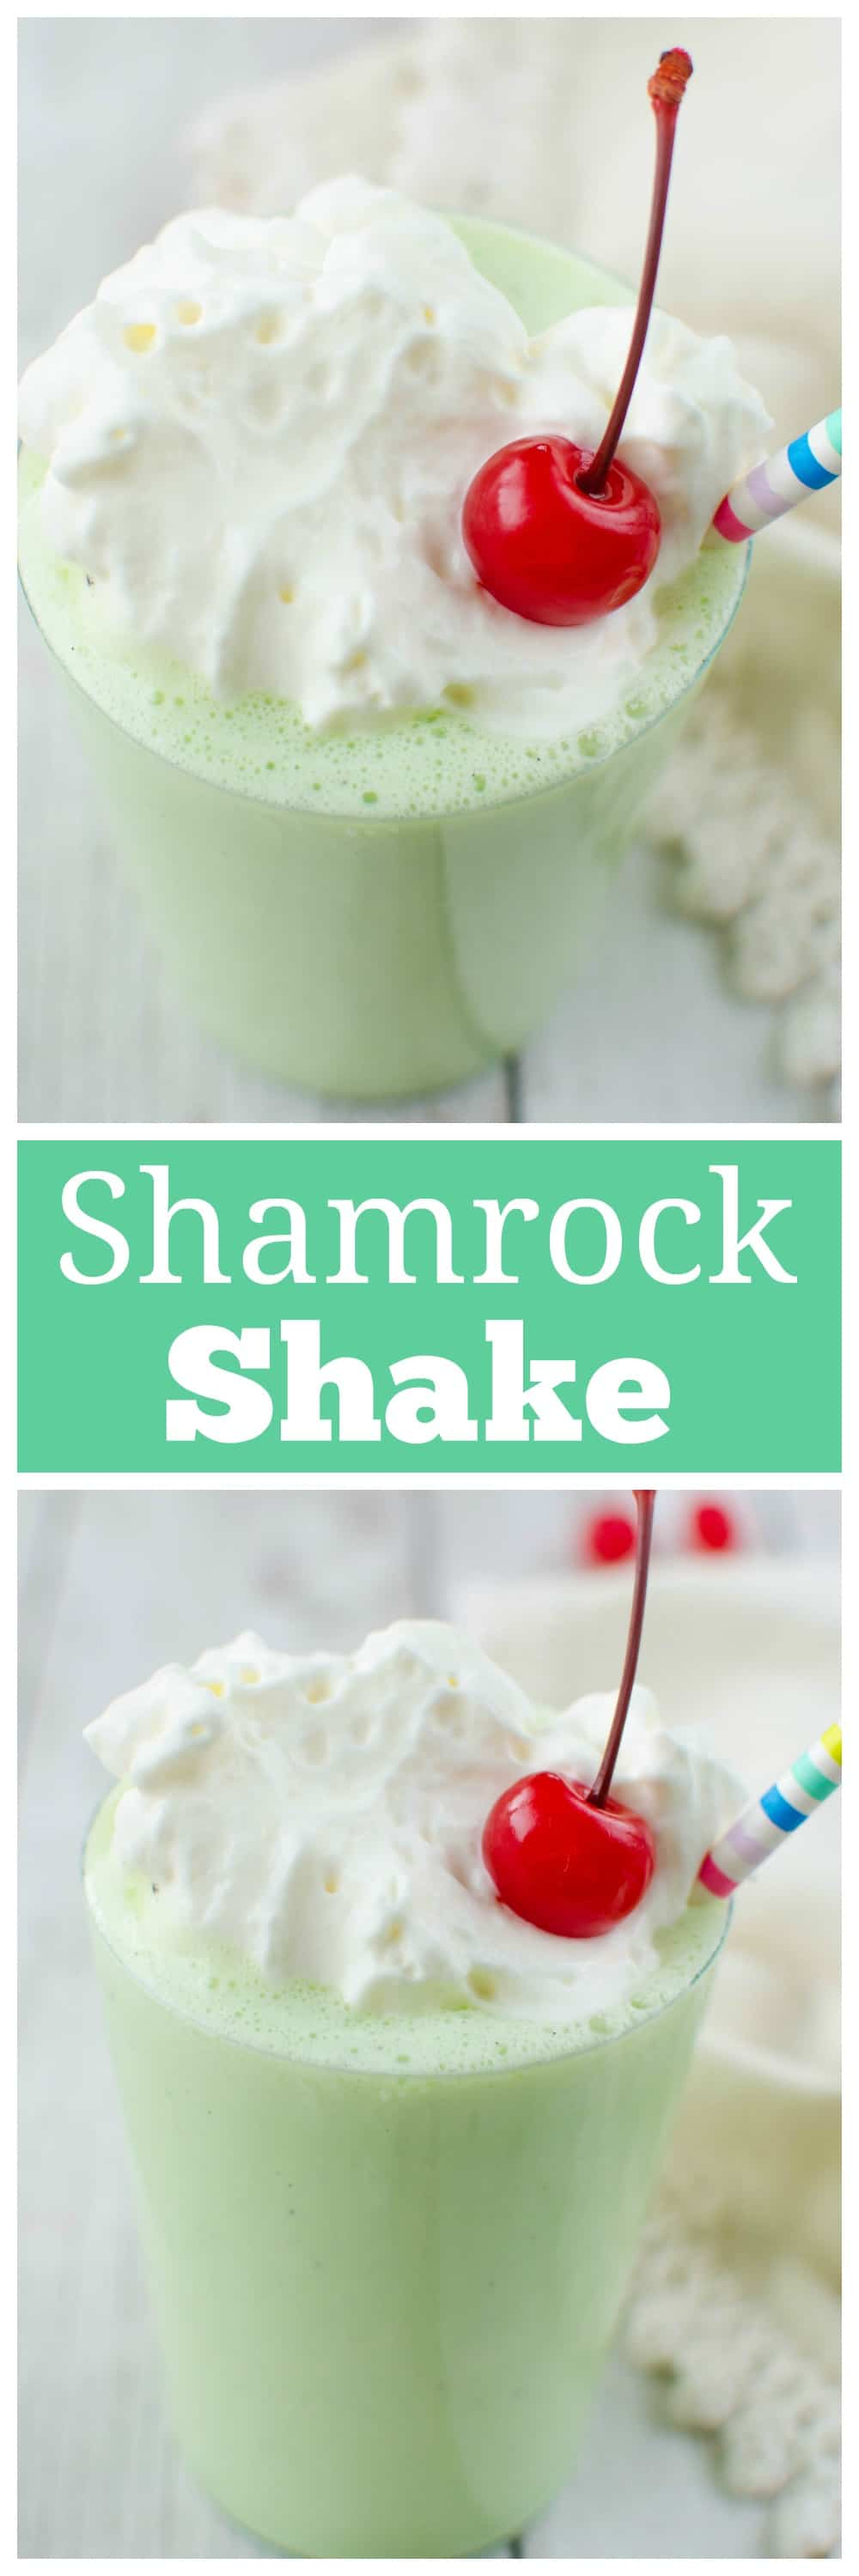 This McDonald's copycat recipe for the Shamrock Shake is perfect for St. Patrick's Day or any day you need a sweet, minty treat! Only 4 ingredients!